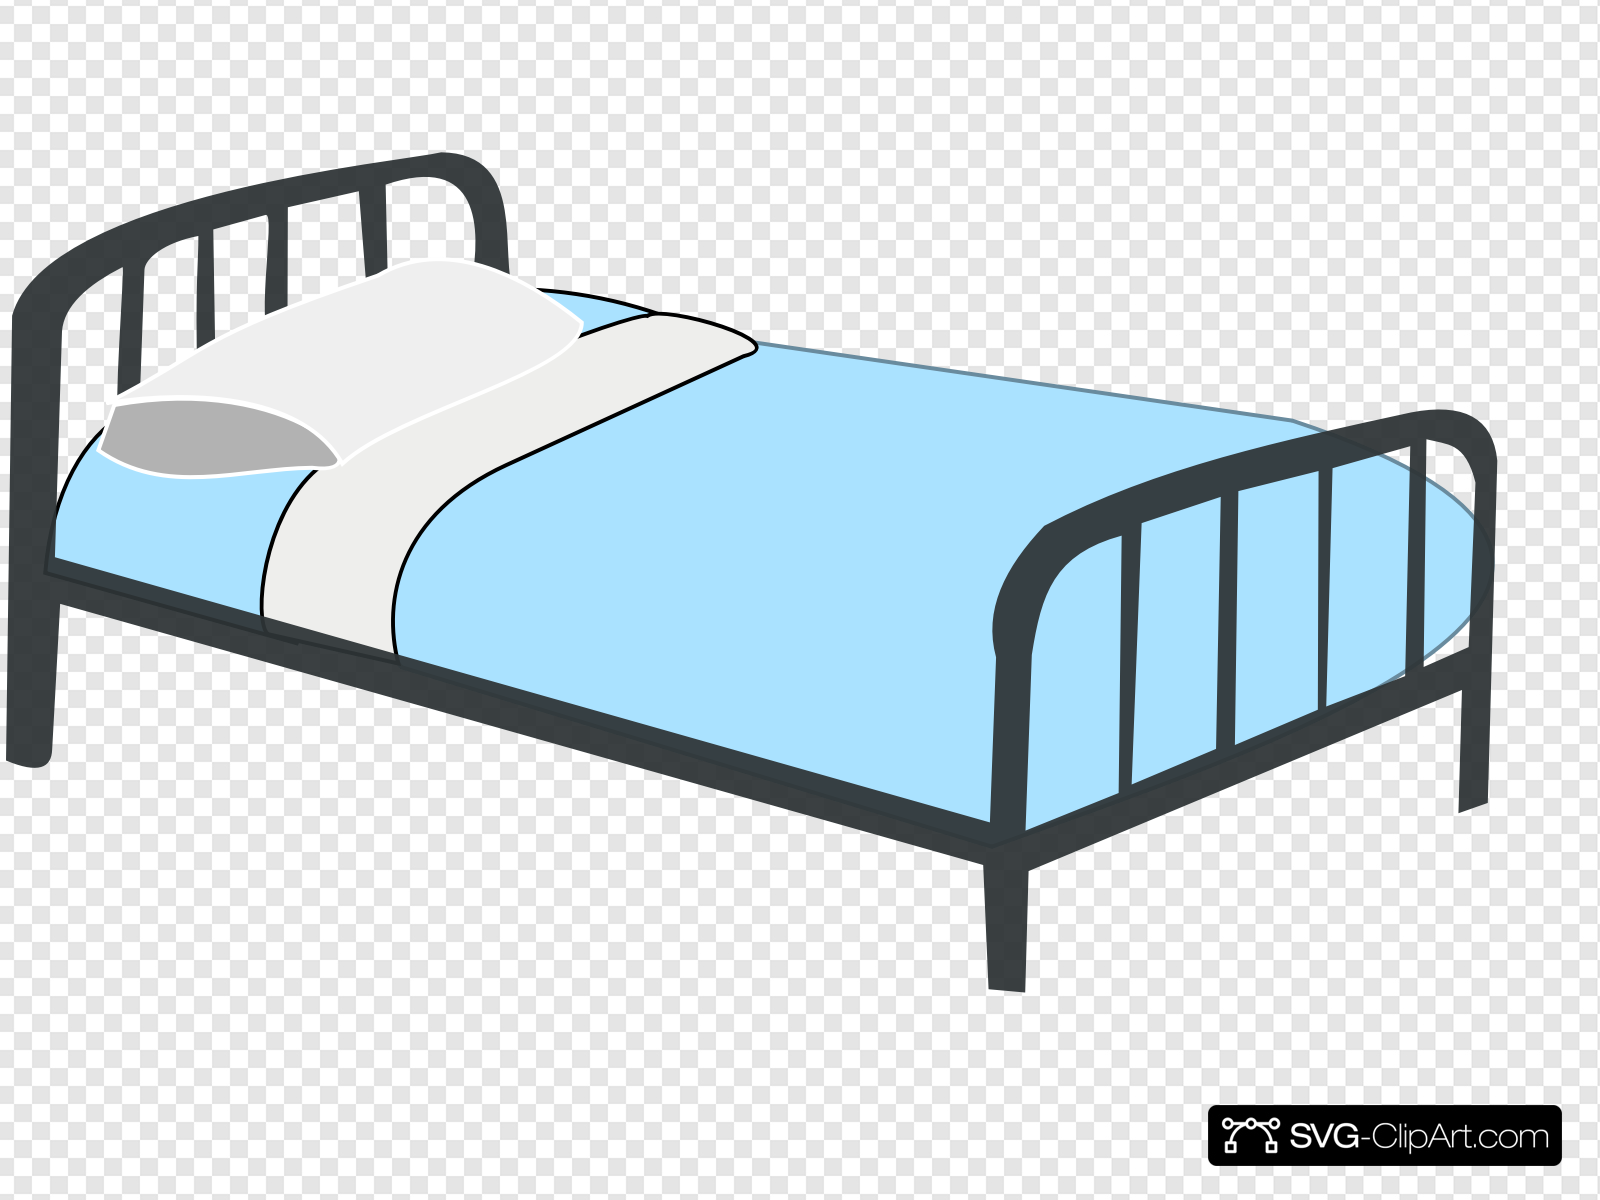 Hospital clip art icon. Clipart bed patient bed